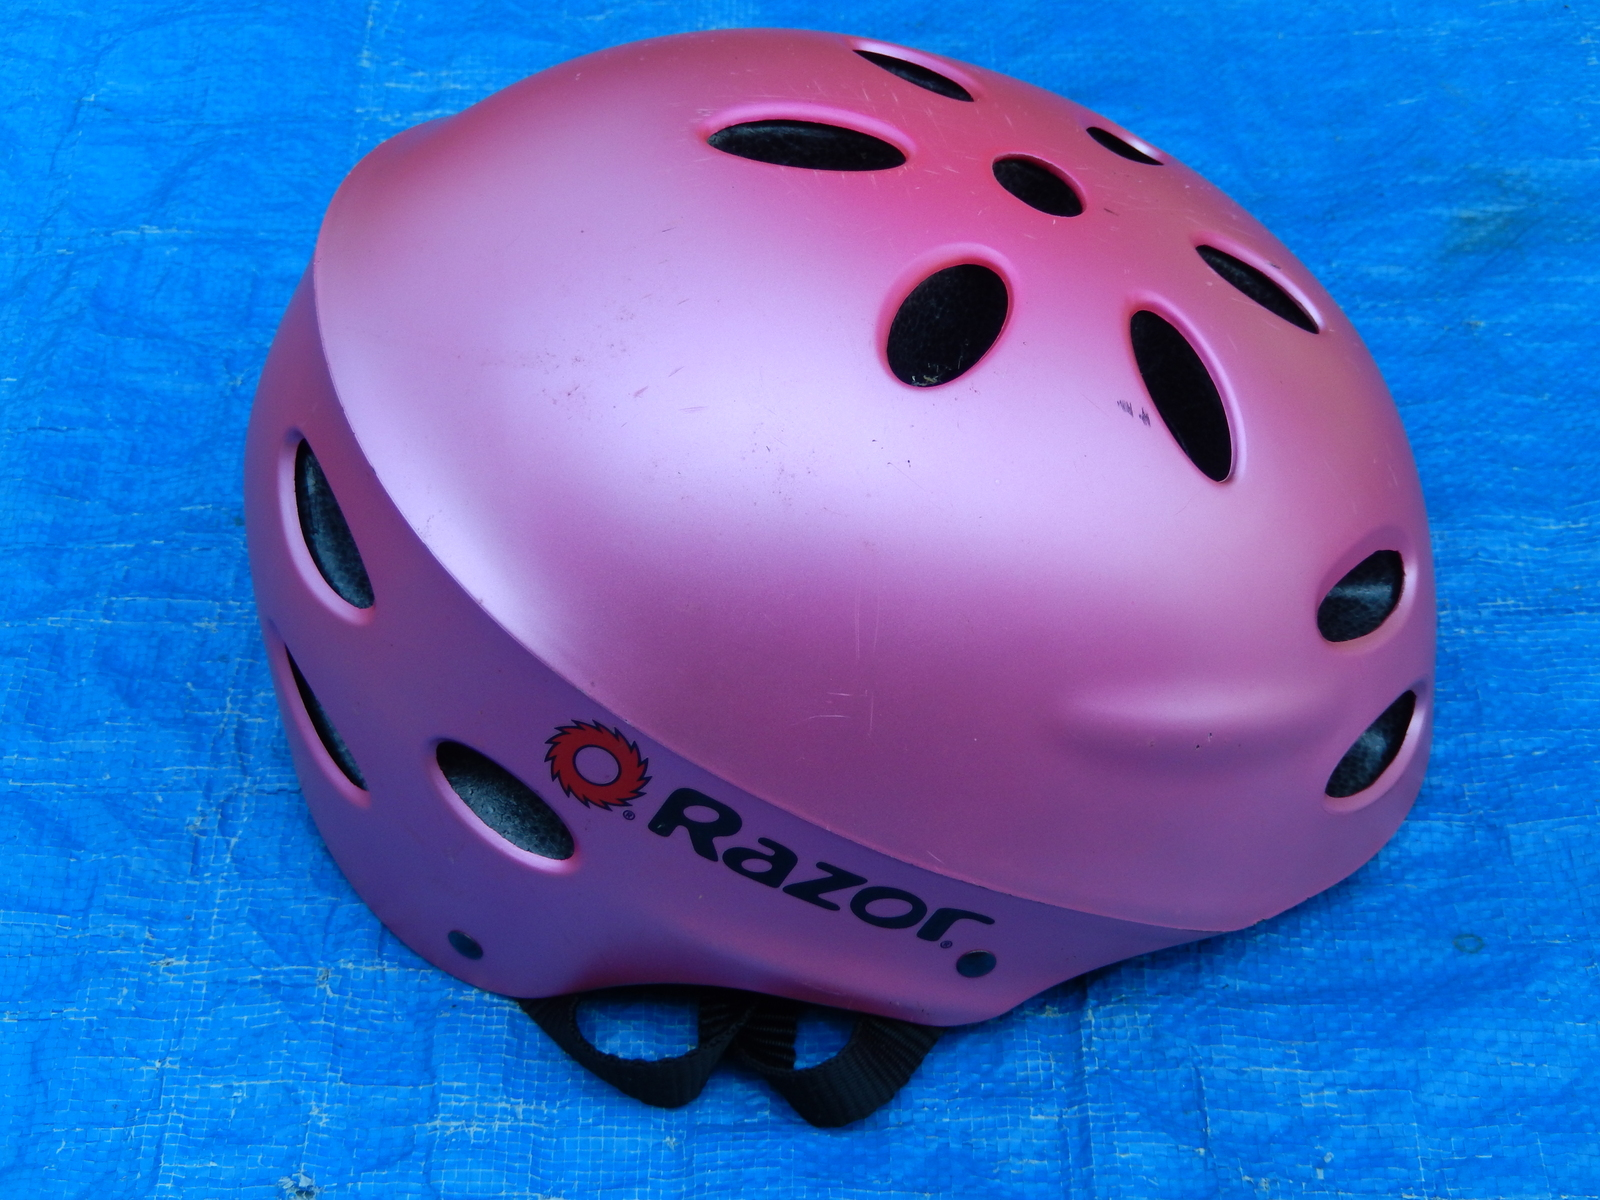 Pink razor bike bicycle safety helmet  1